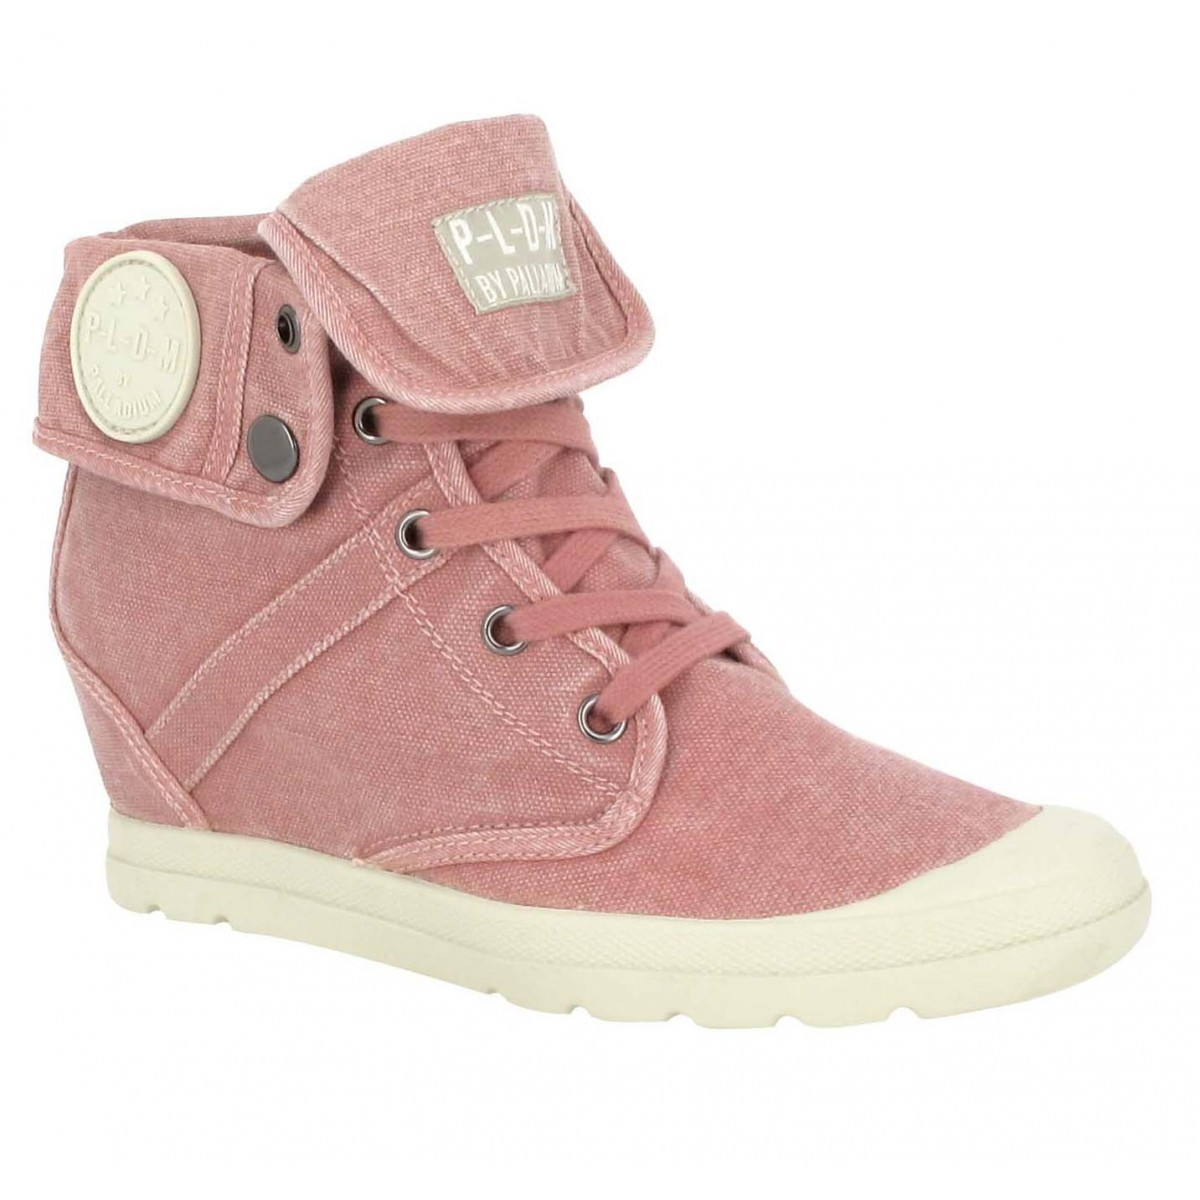 Bottines PALLADIUM Ecuador toile Femme Rose